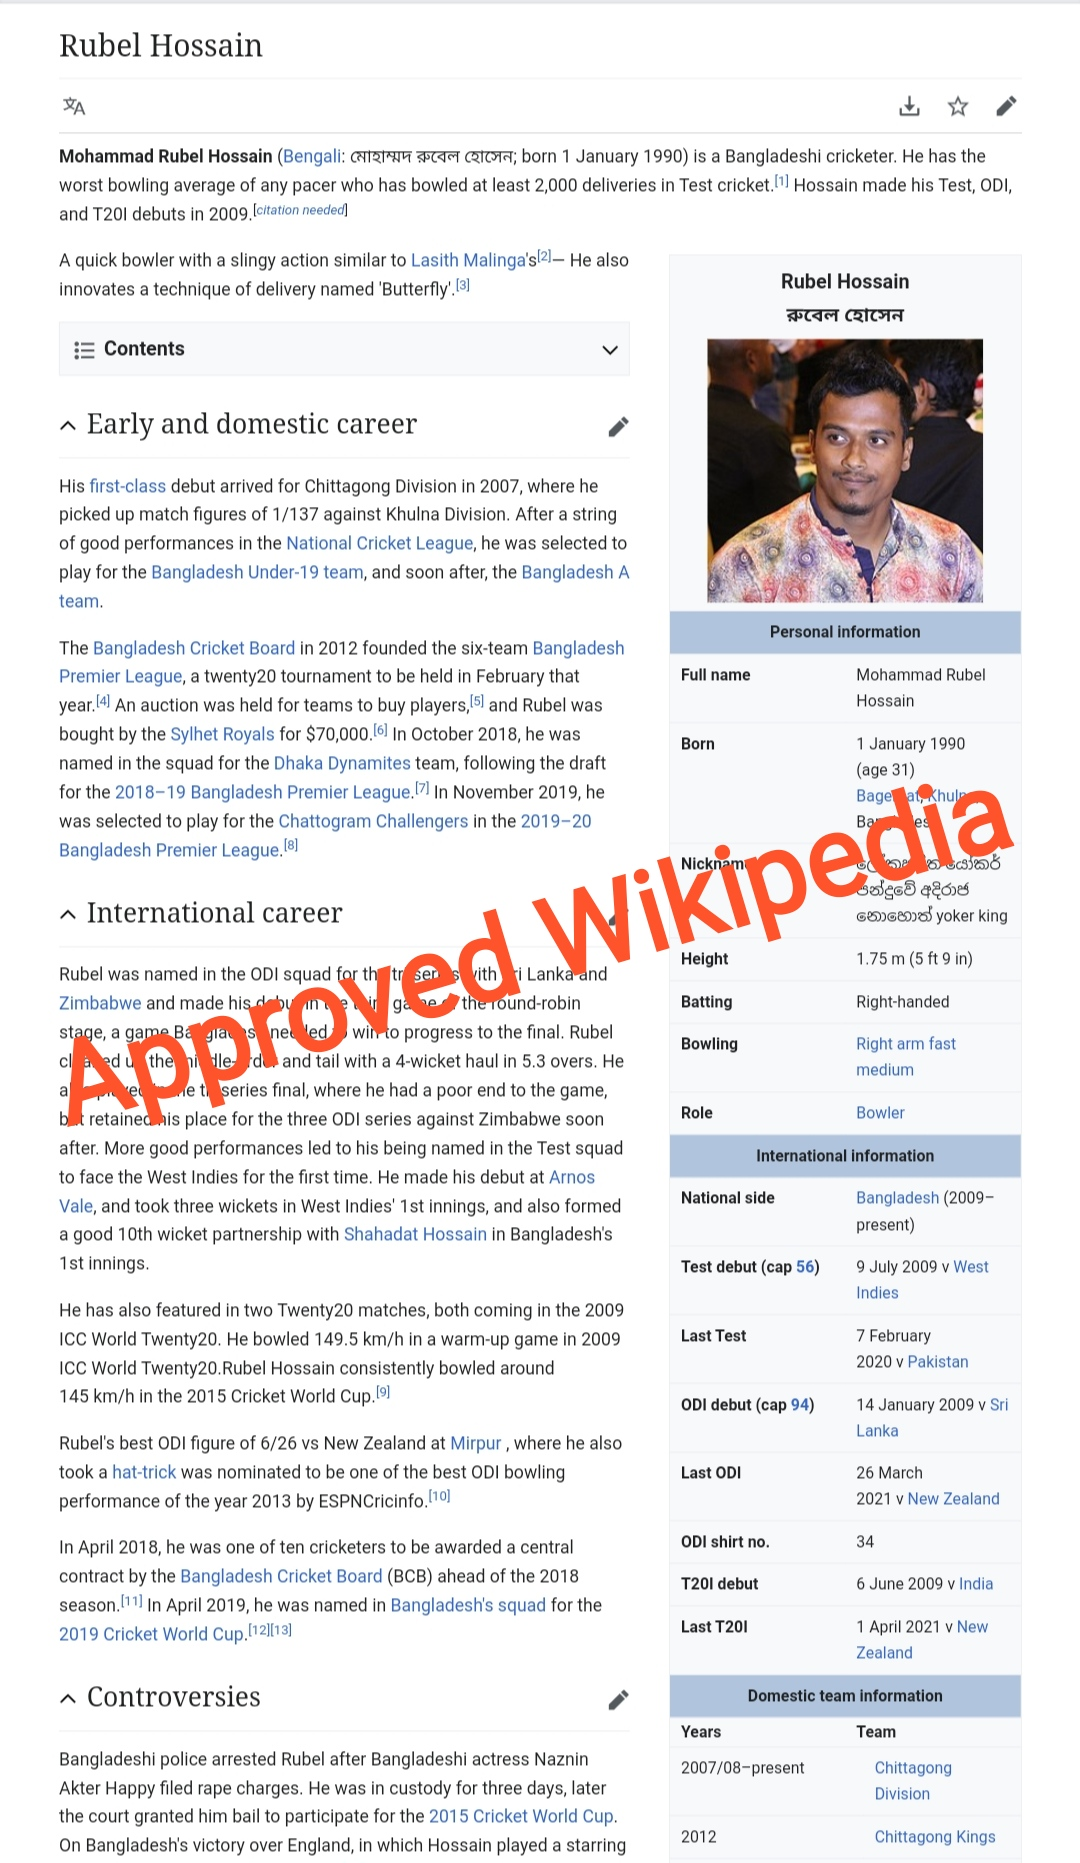 Wikipedia page coding for new page and editing for existing page.